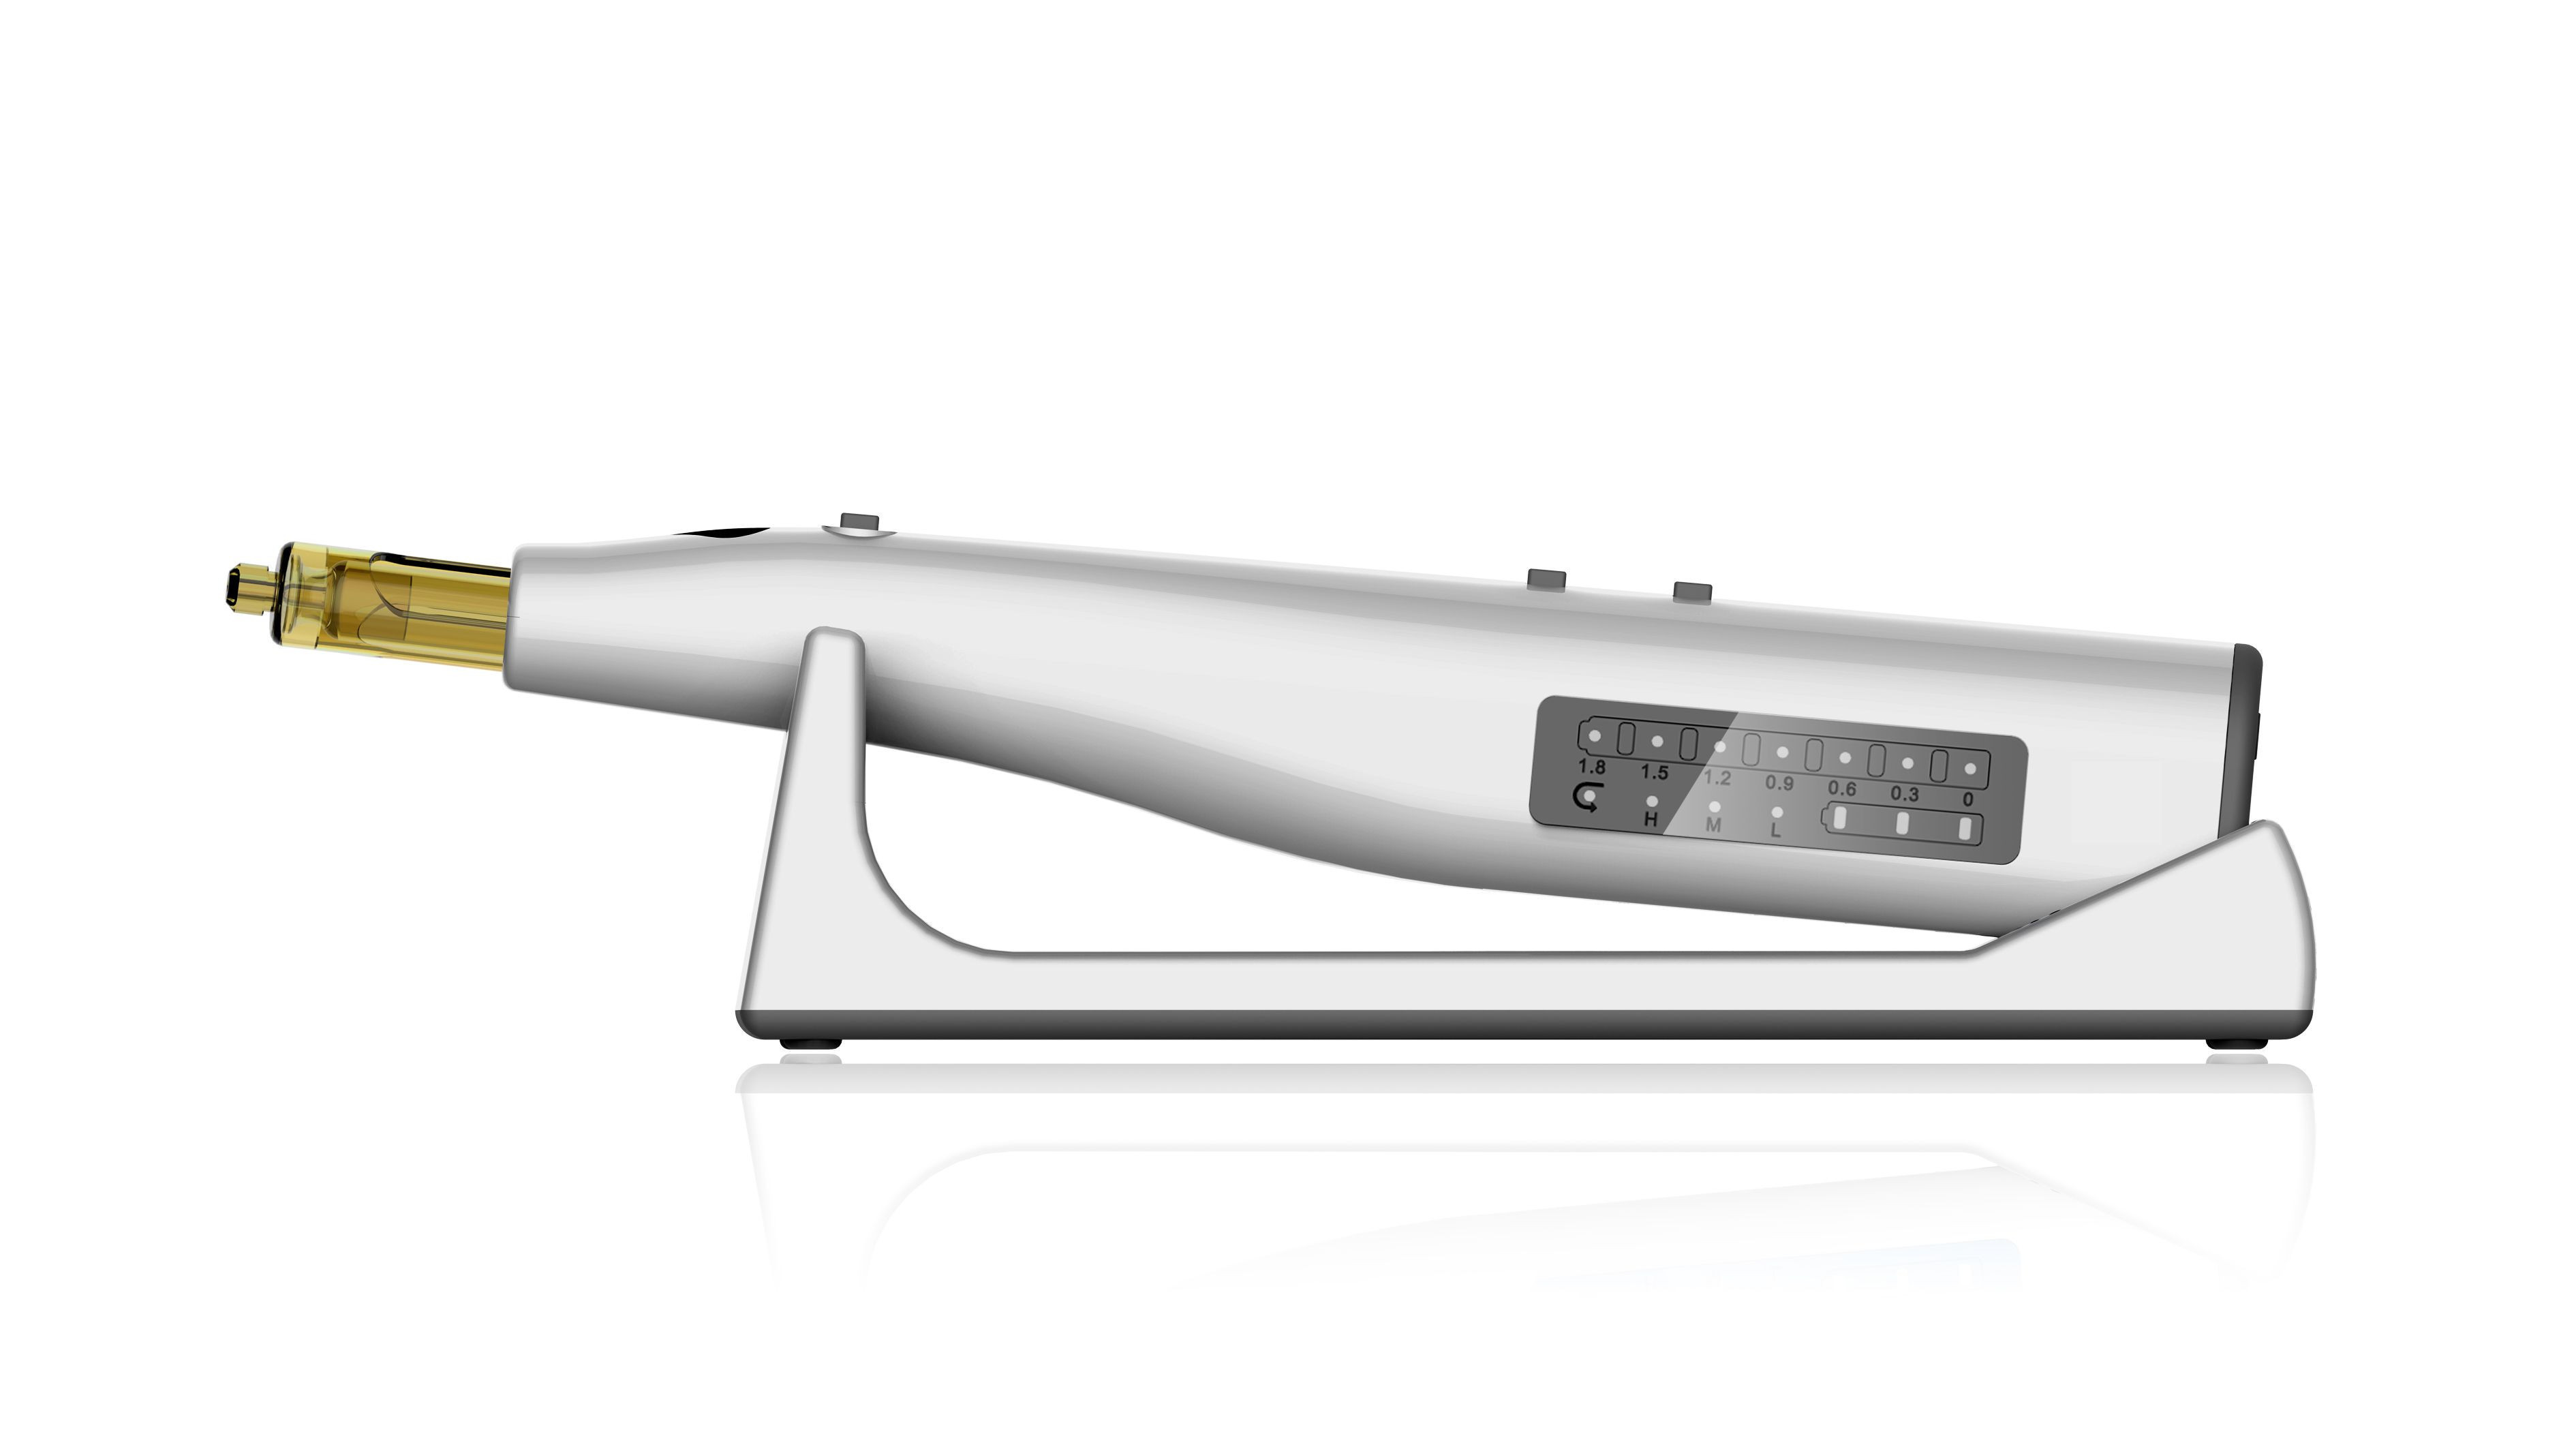 Painless oral dental local anesthesia delivery system